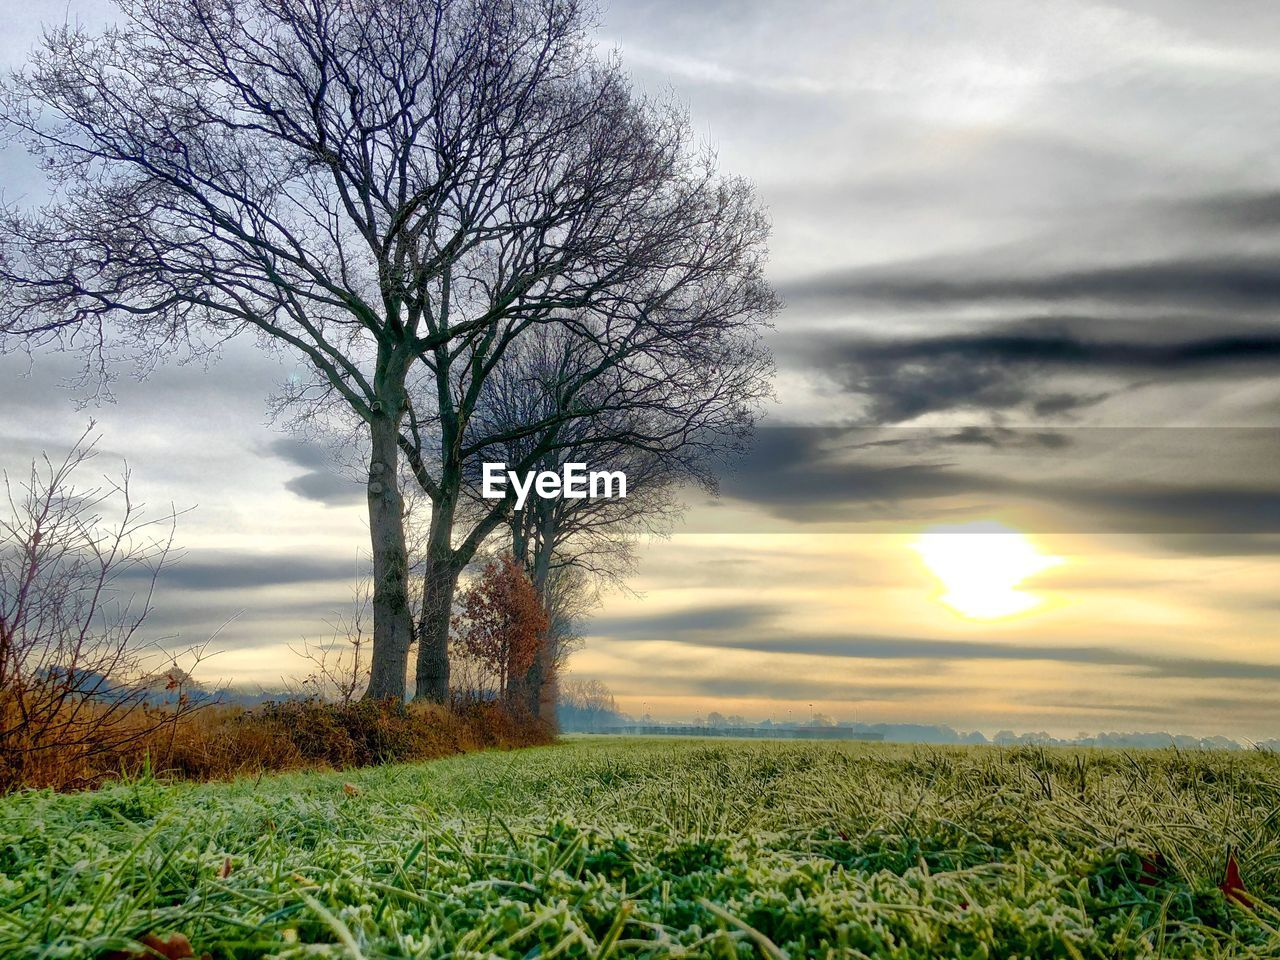 sky, cloud - sky, plant, field, beauty in nature, environment, landscape, tree, tranquil scene, scenics - nature, land, tranquility, bare tree, grass, sunset, nature, no people, non-urban scene, outdoors, isolated